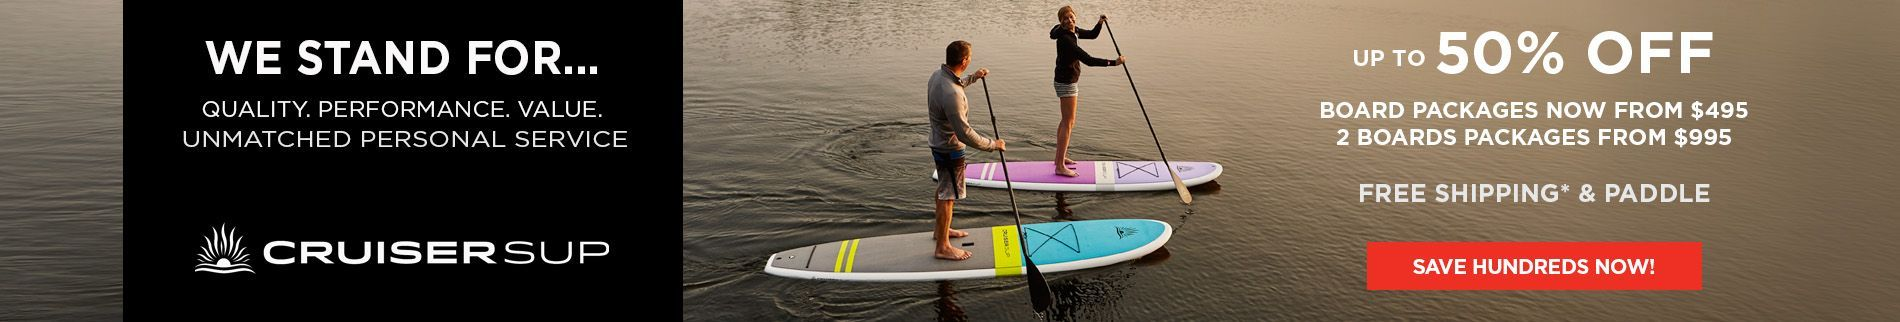 Yellow Stand Up Paddle Boards